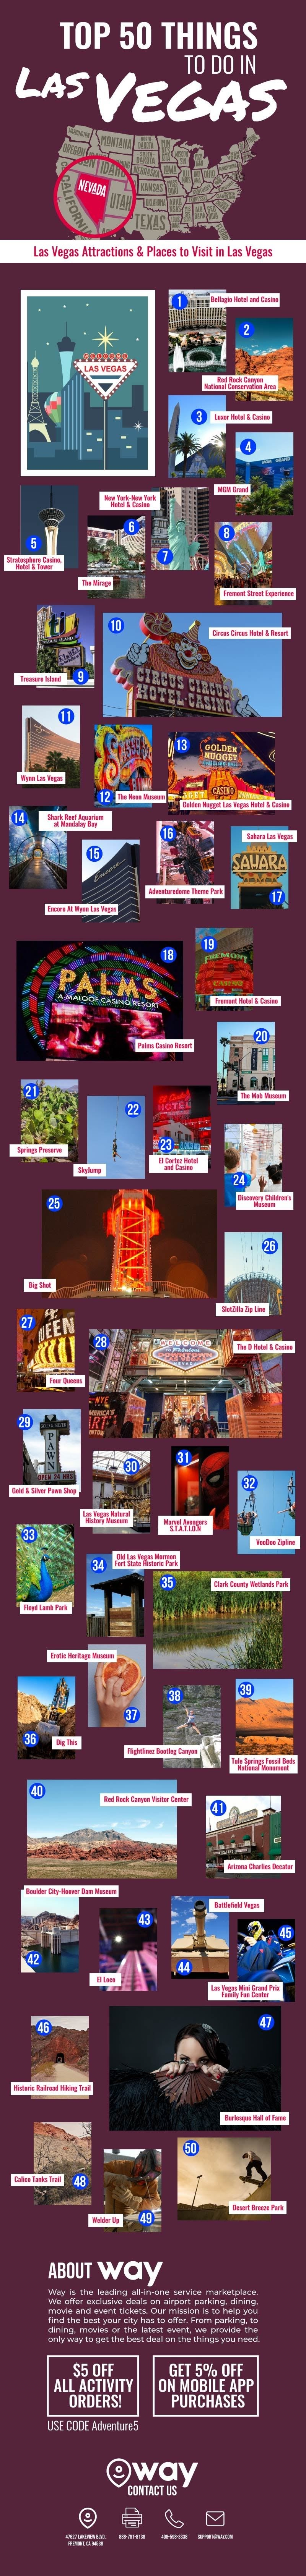 Top 50 Things to Do in Las Vegas #infographic